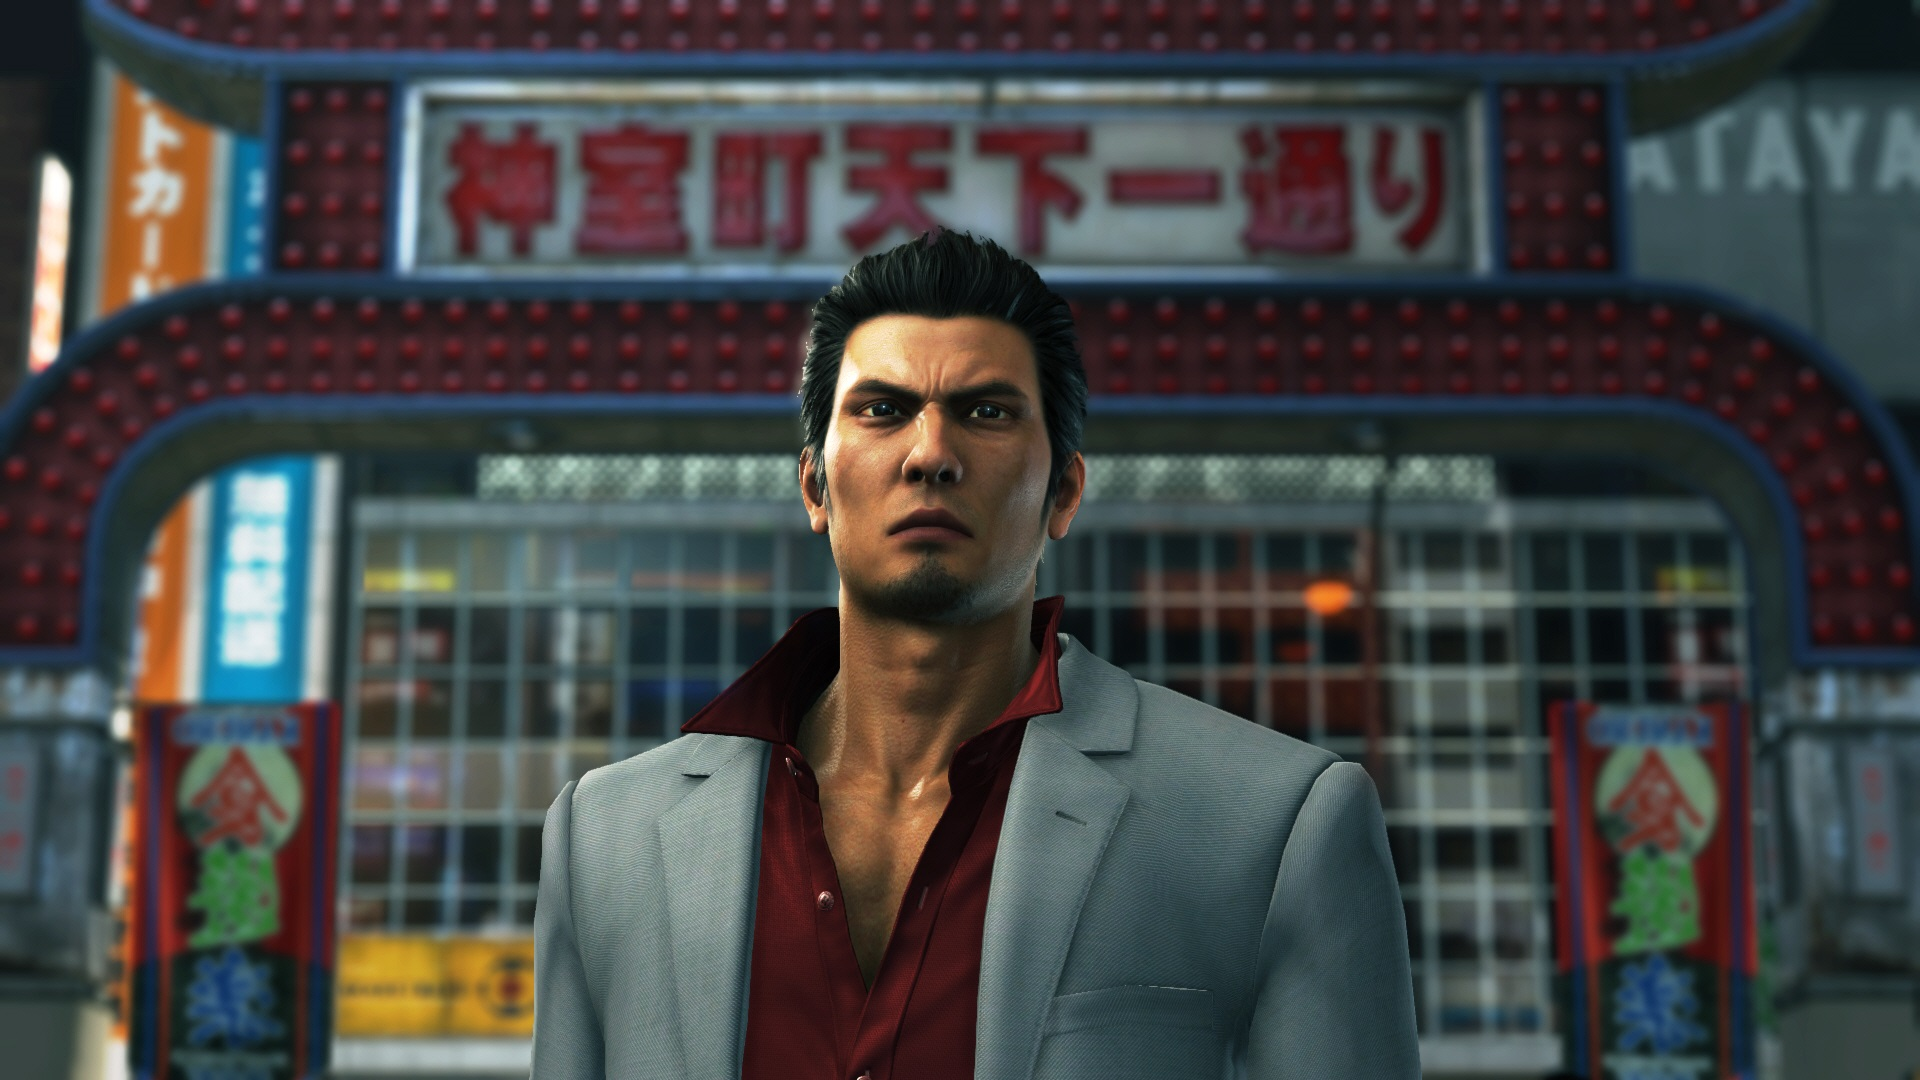 Yakuza 3, 4, And 5 Are Being Remastered For The PS4